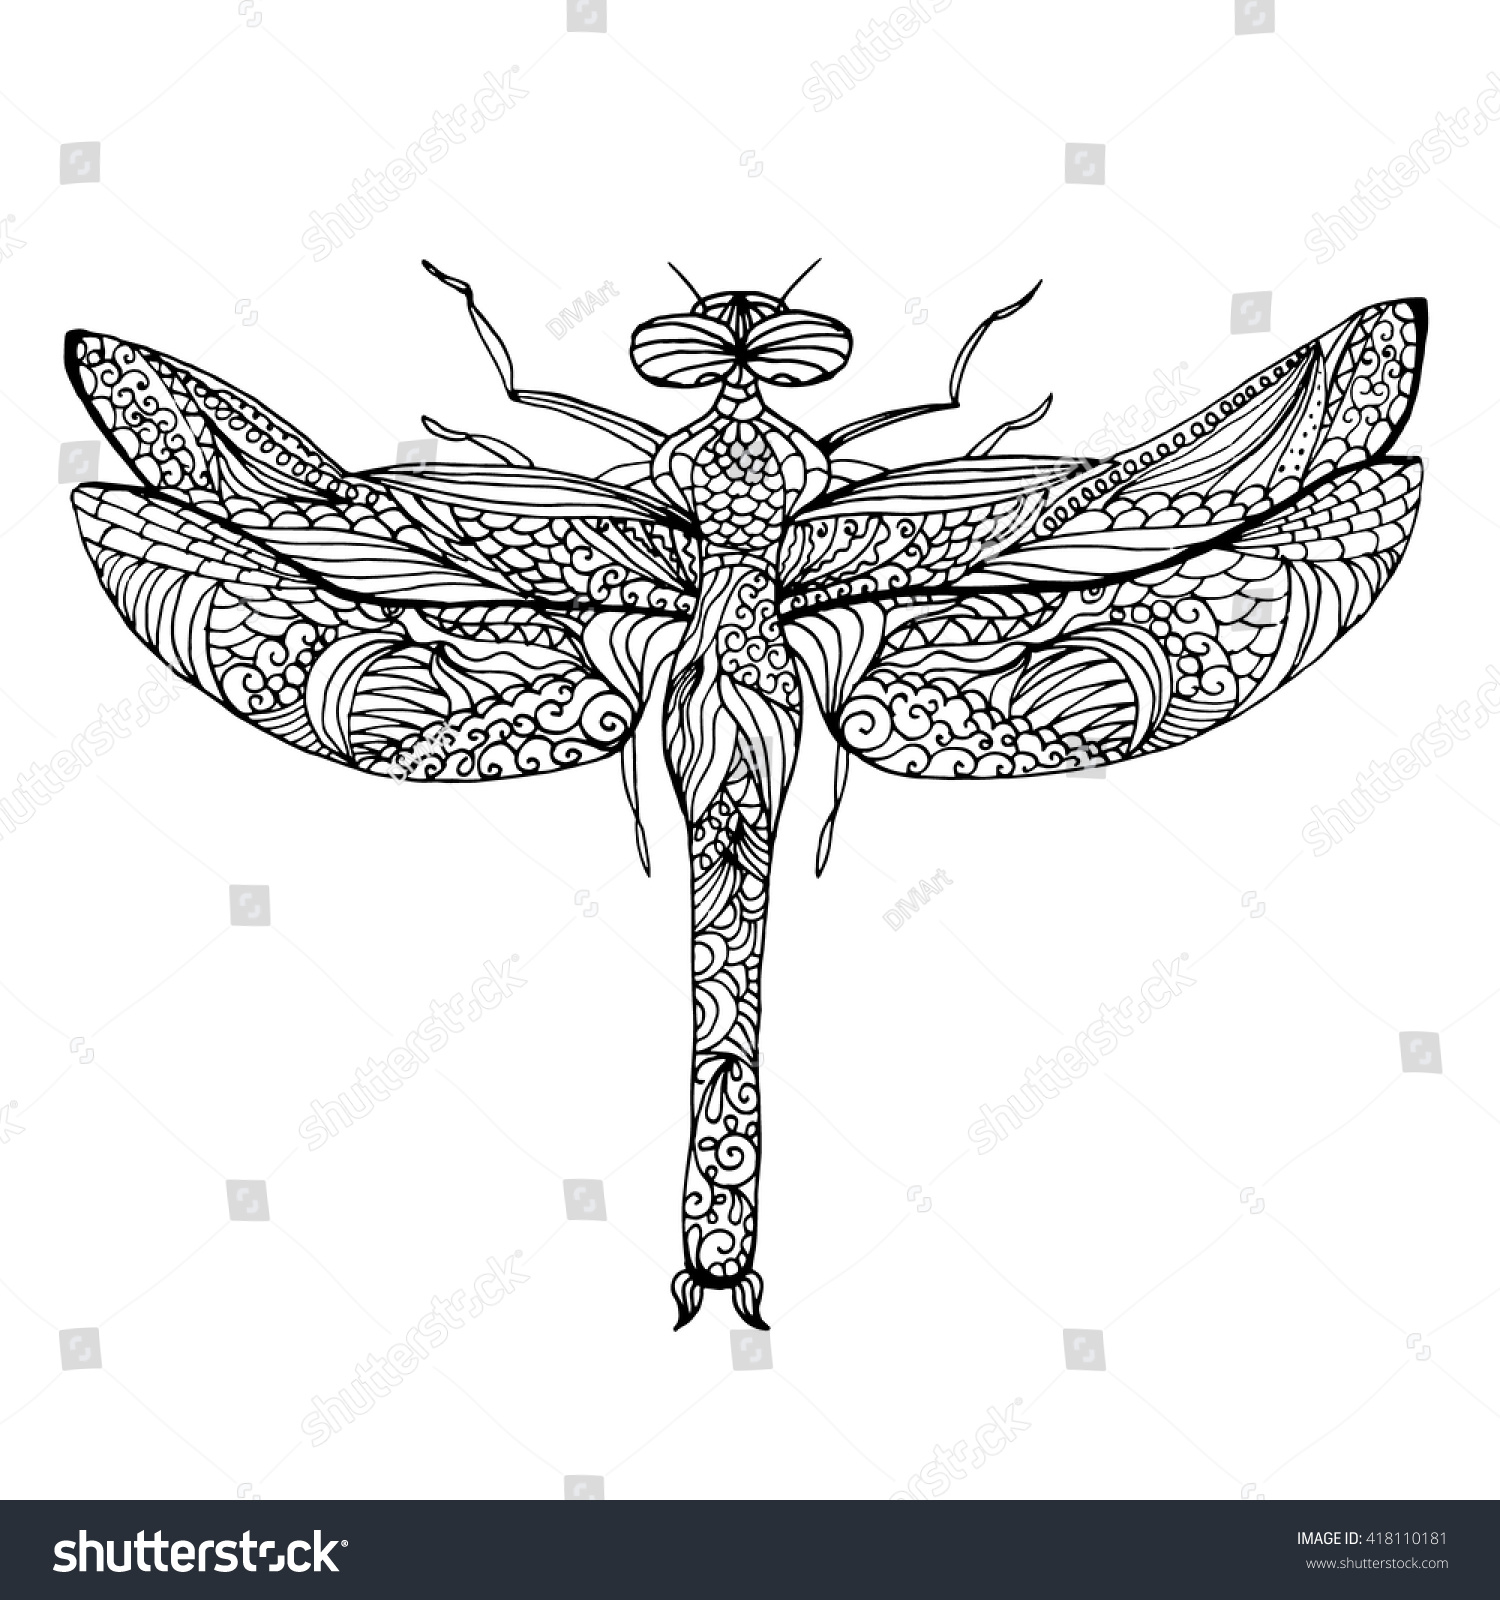 Zentangle Stylized Dragonfly Ethnic Patterned Vector Stock Vector ...